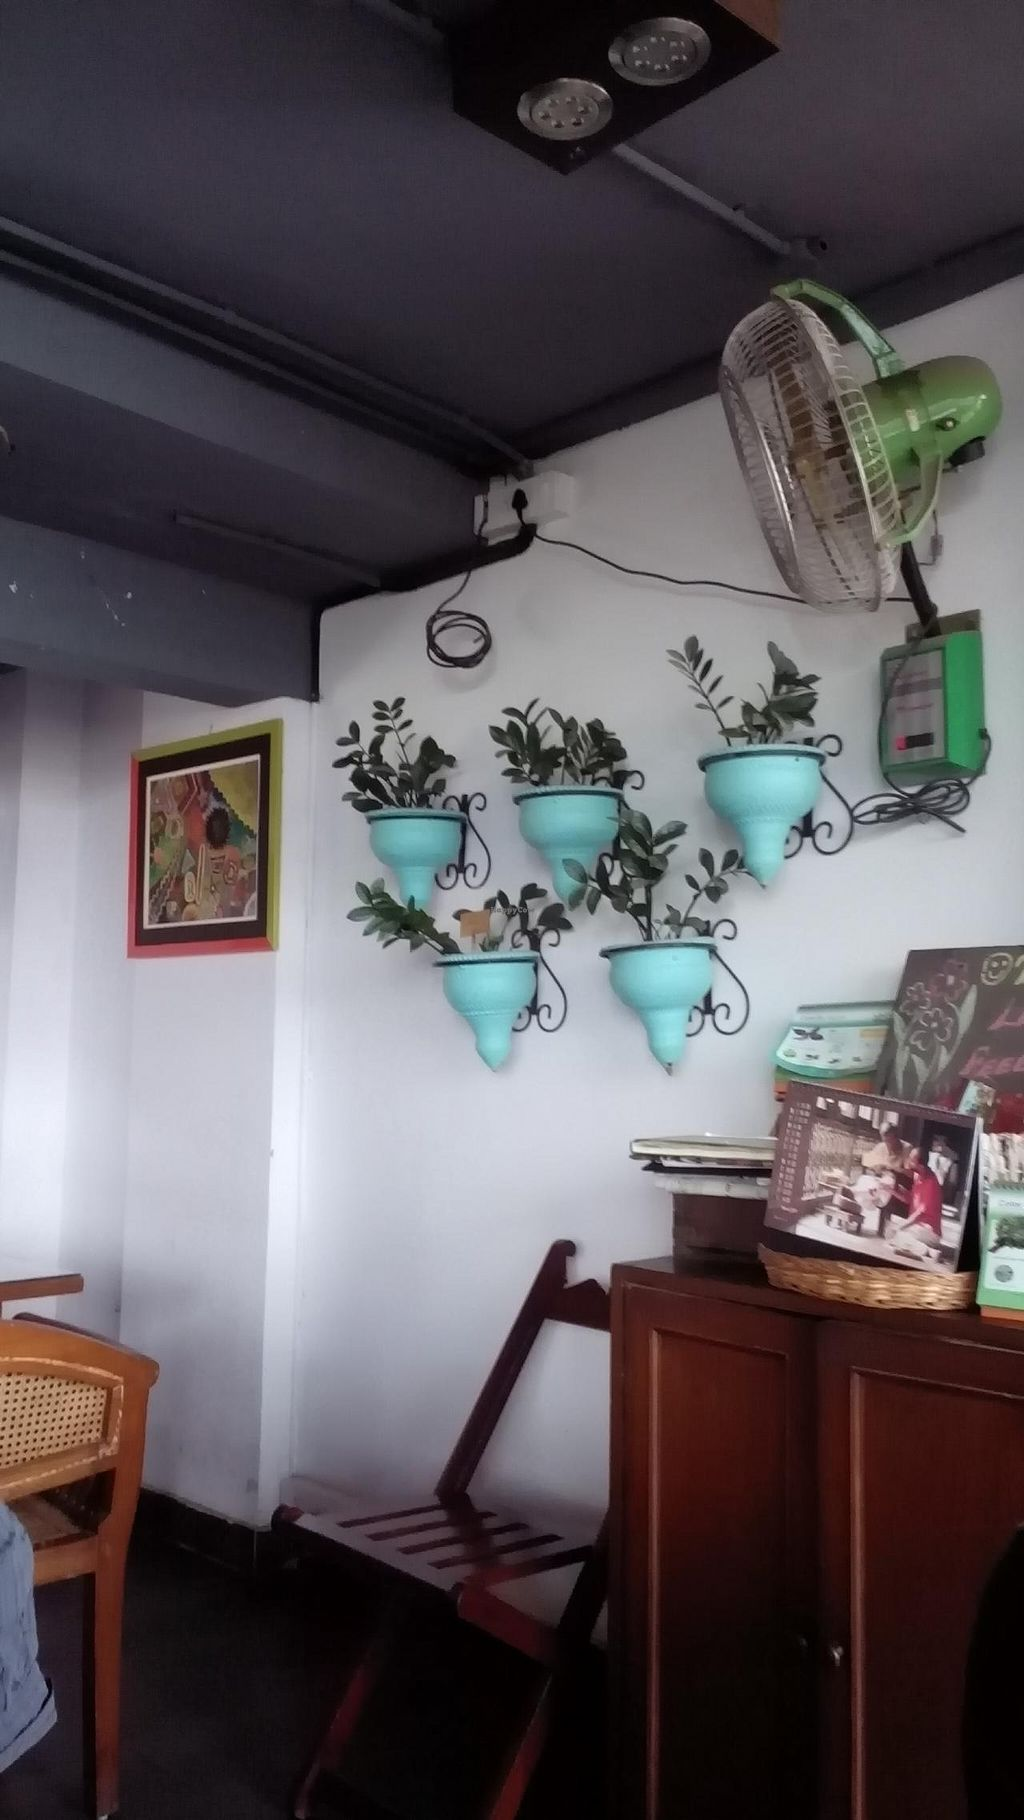 """Photo of Paradigm Shift Vegan Cafe  by <a href=""""/members/profile/Yilla"""">Yilla</a> <br/>décor <br/> March 31, 2015  - <a href='/contact/abuse/image/38782/97429'>Report</a>"""